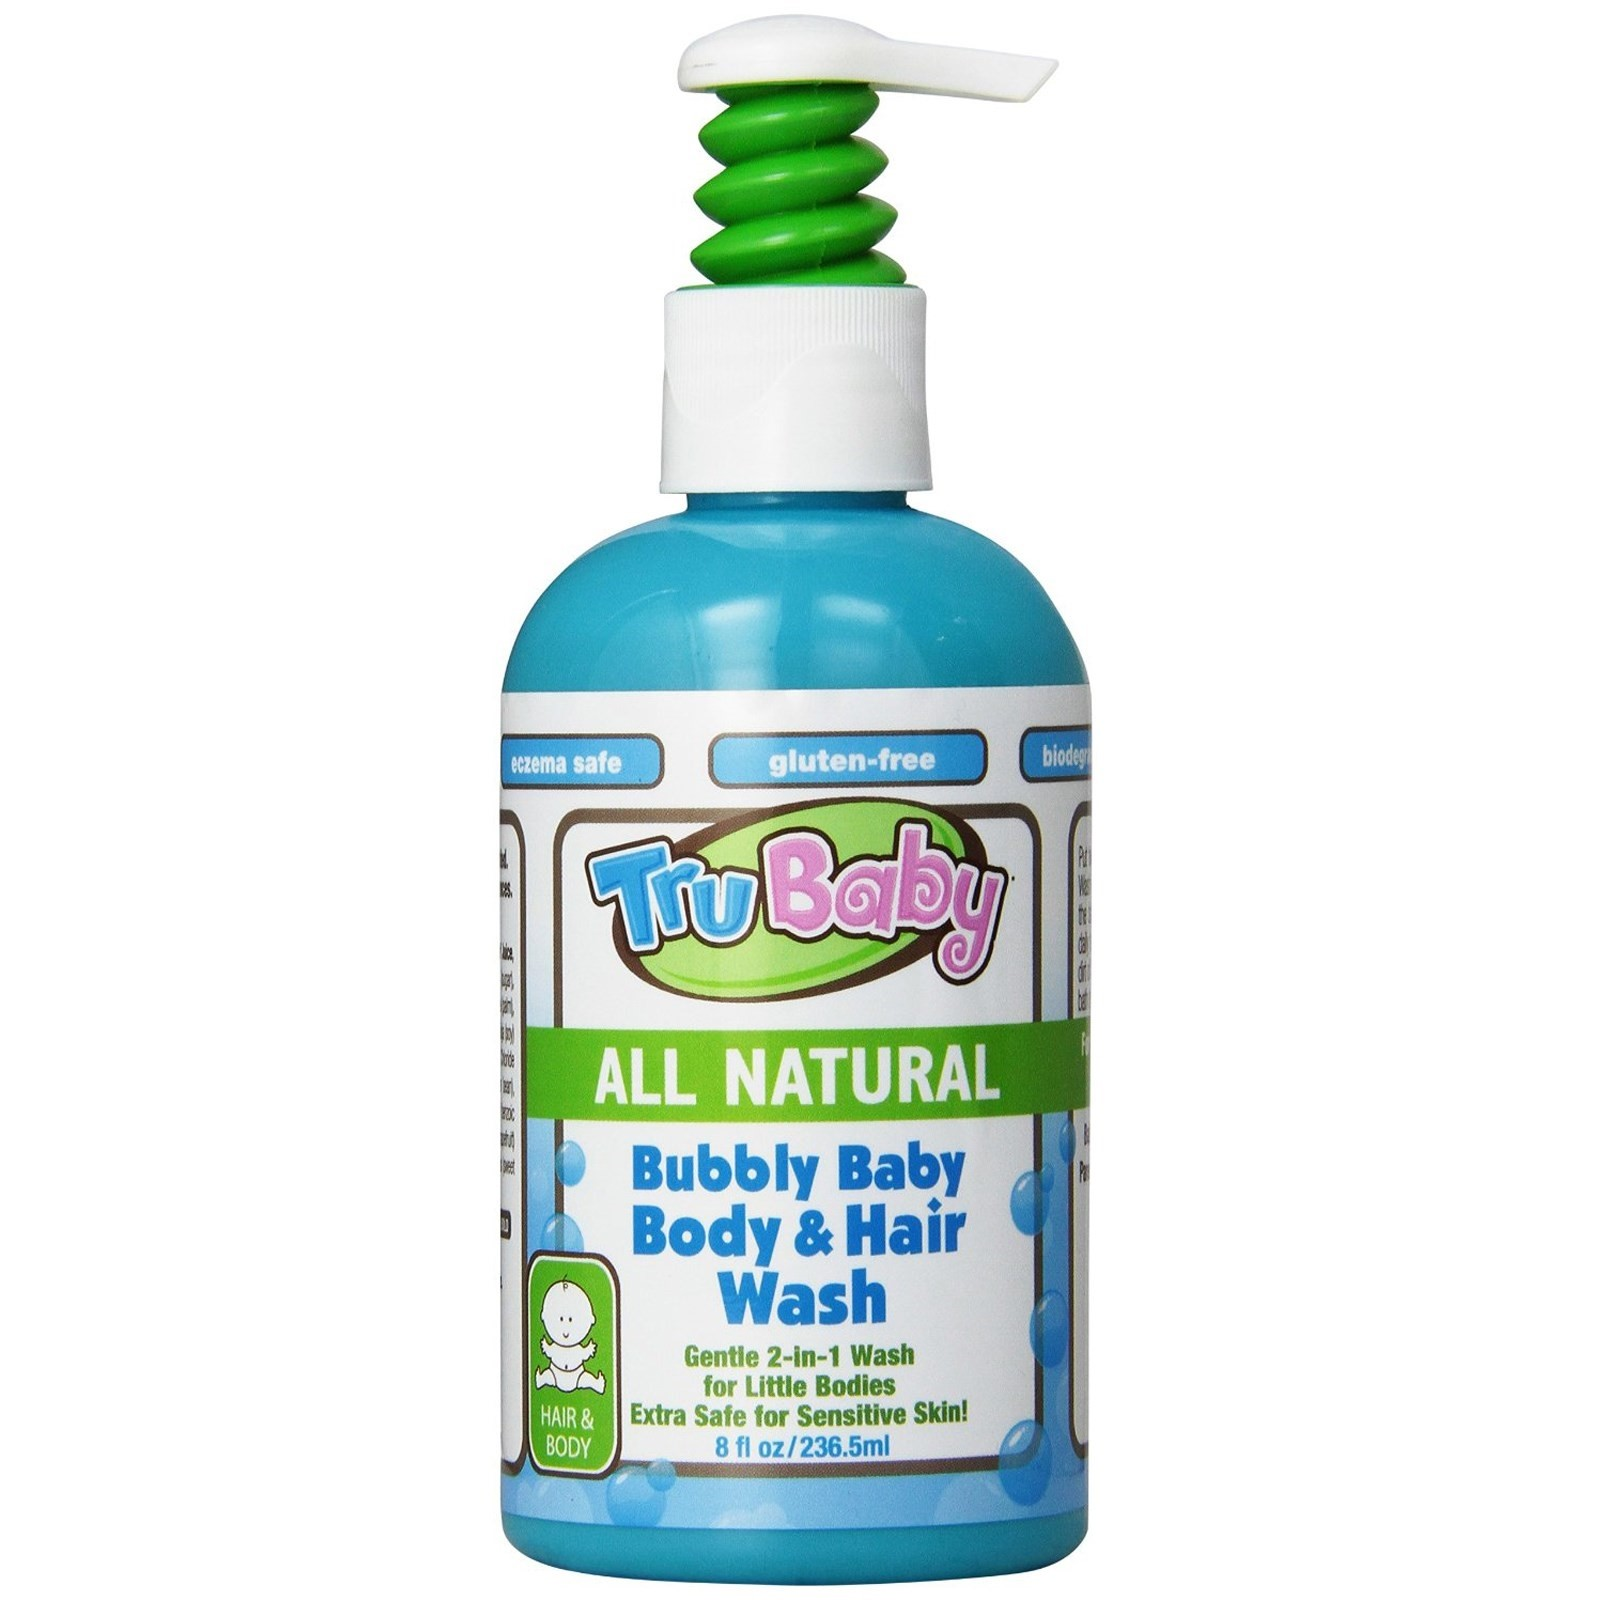 TruBaby Bubbly Baby Body&Hair Wash